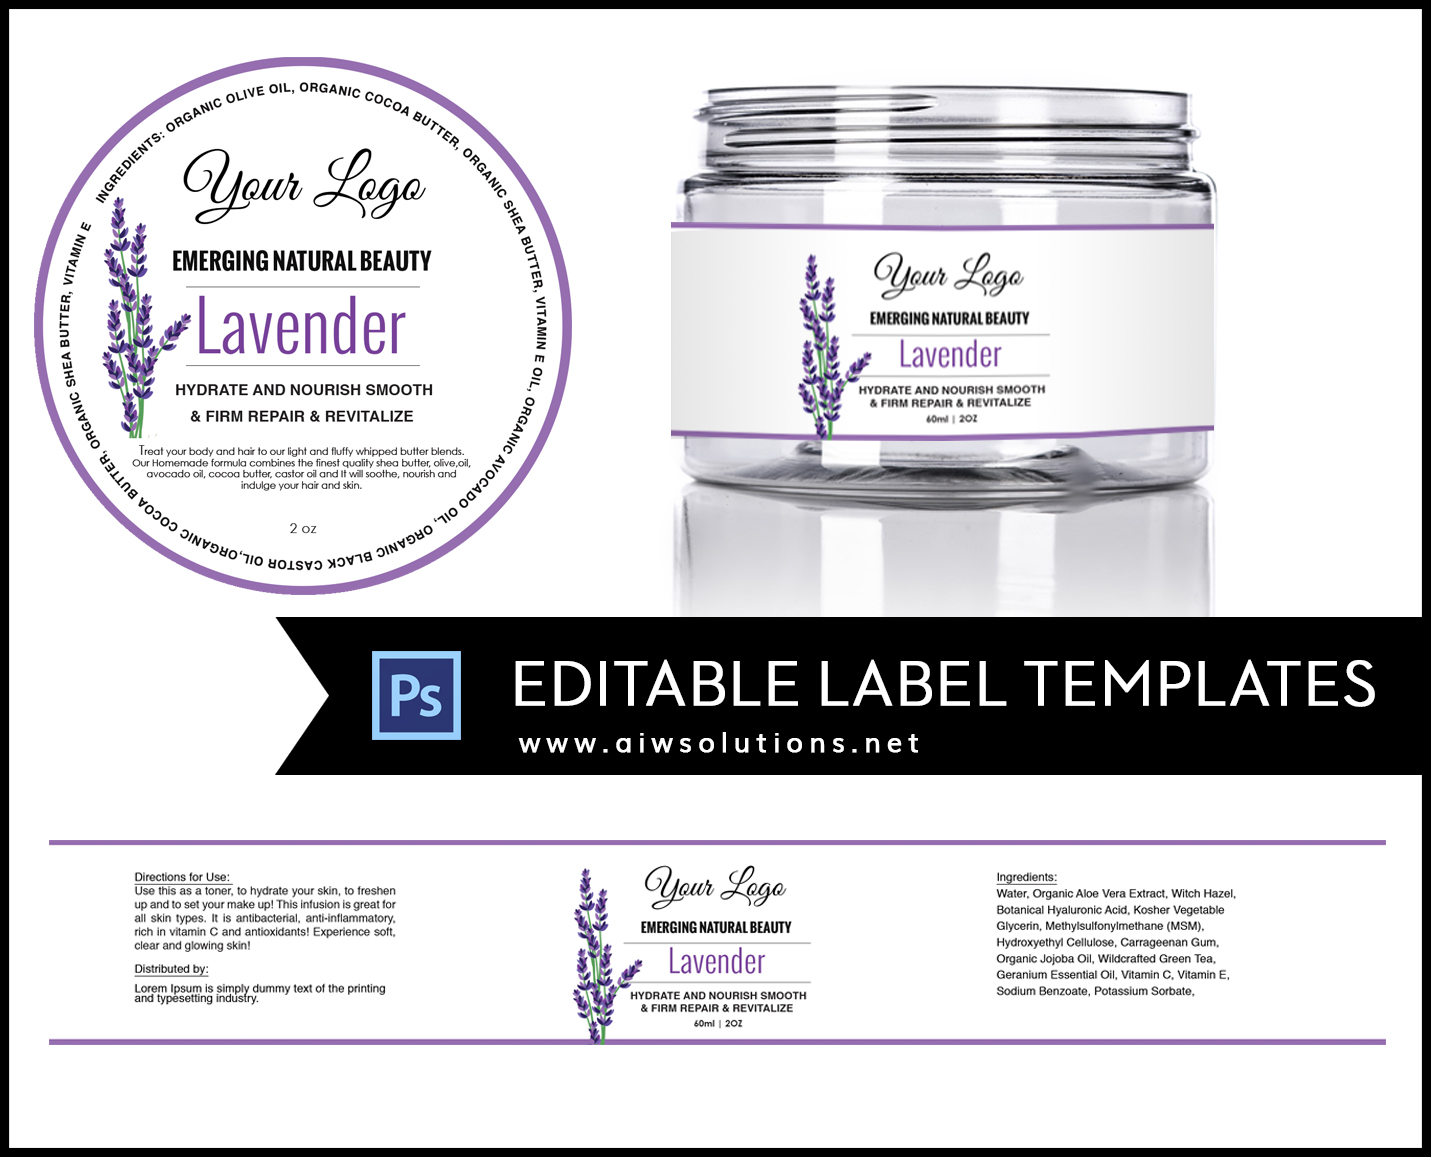 label template id11 aiwsolutions With 8 oz jar labels